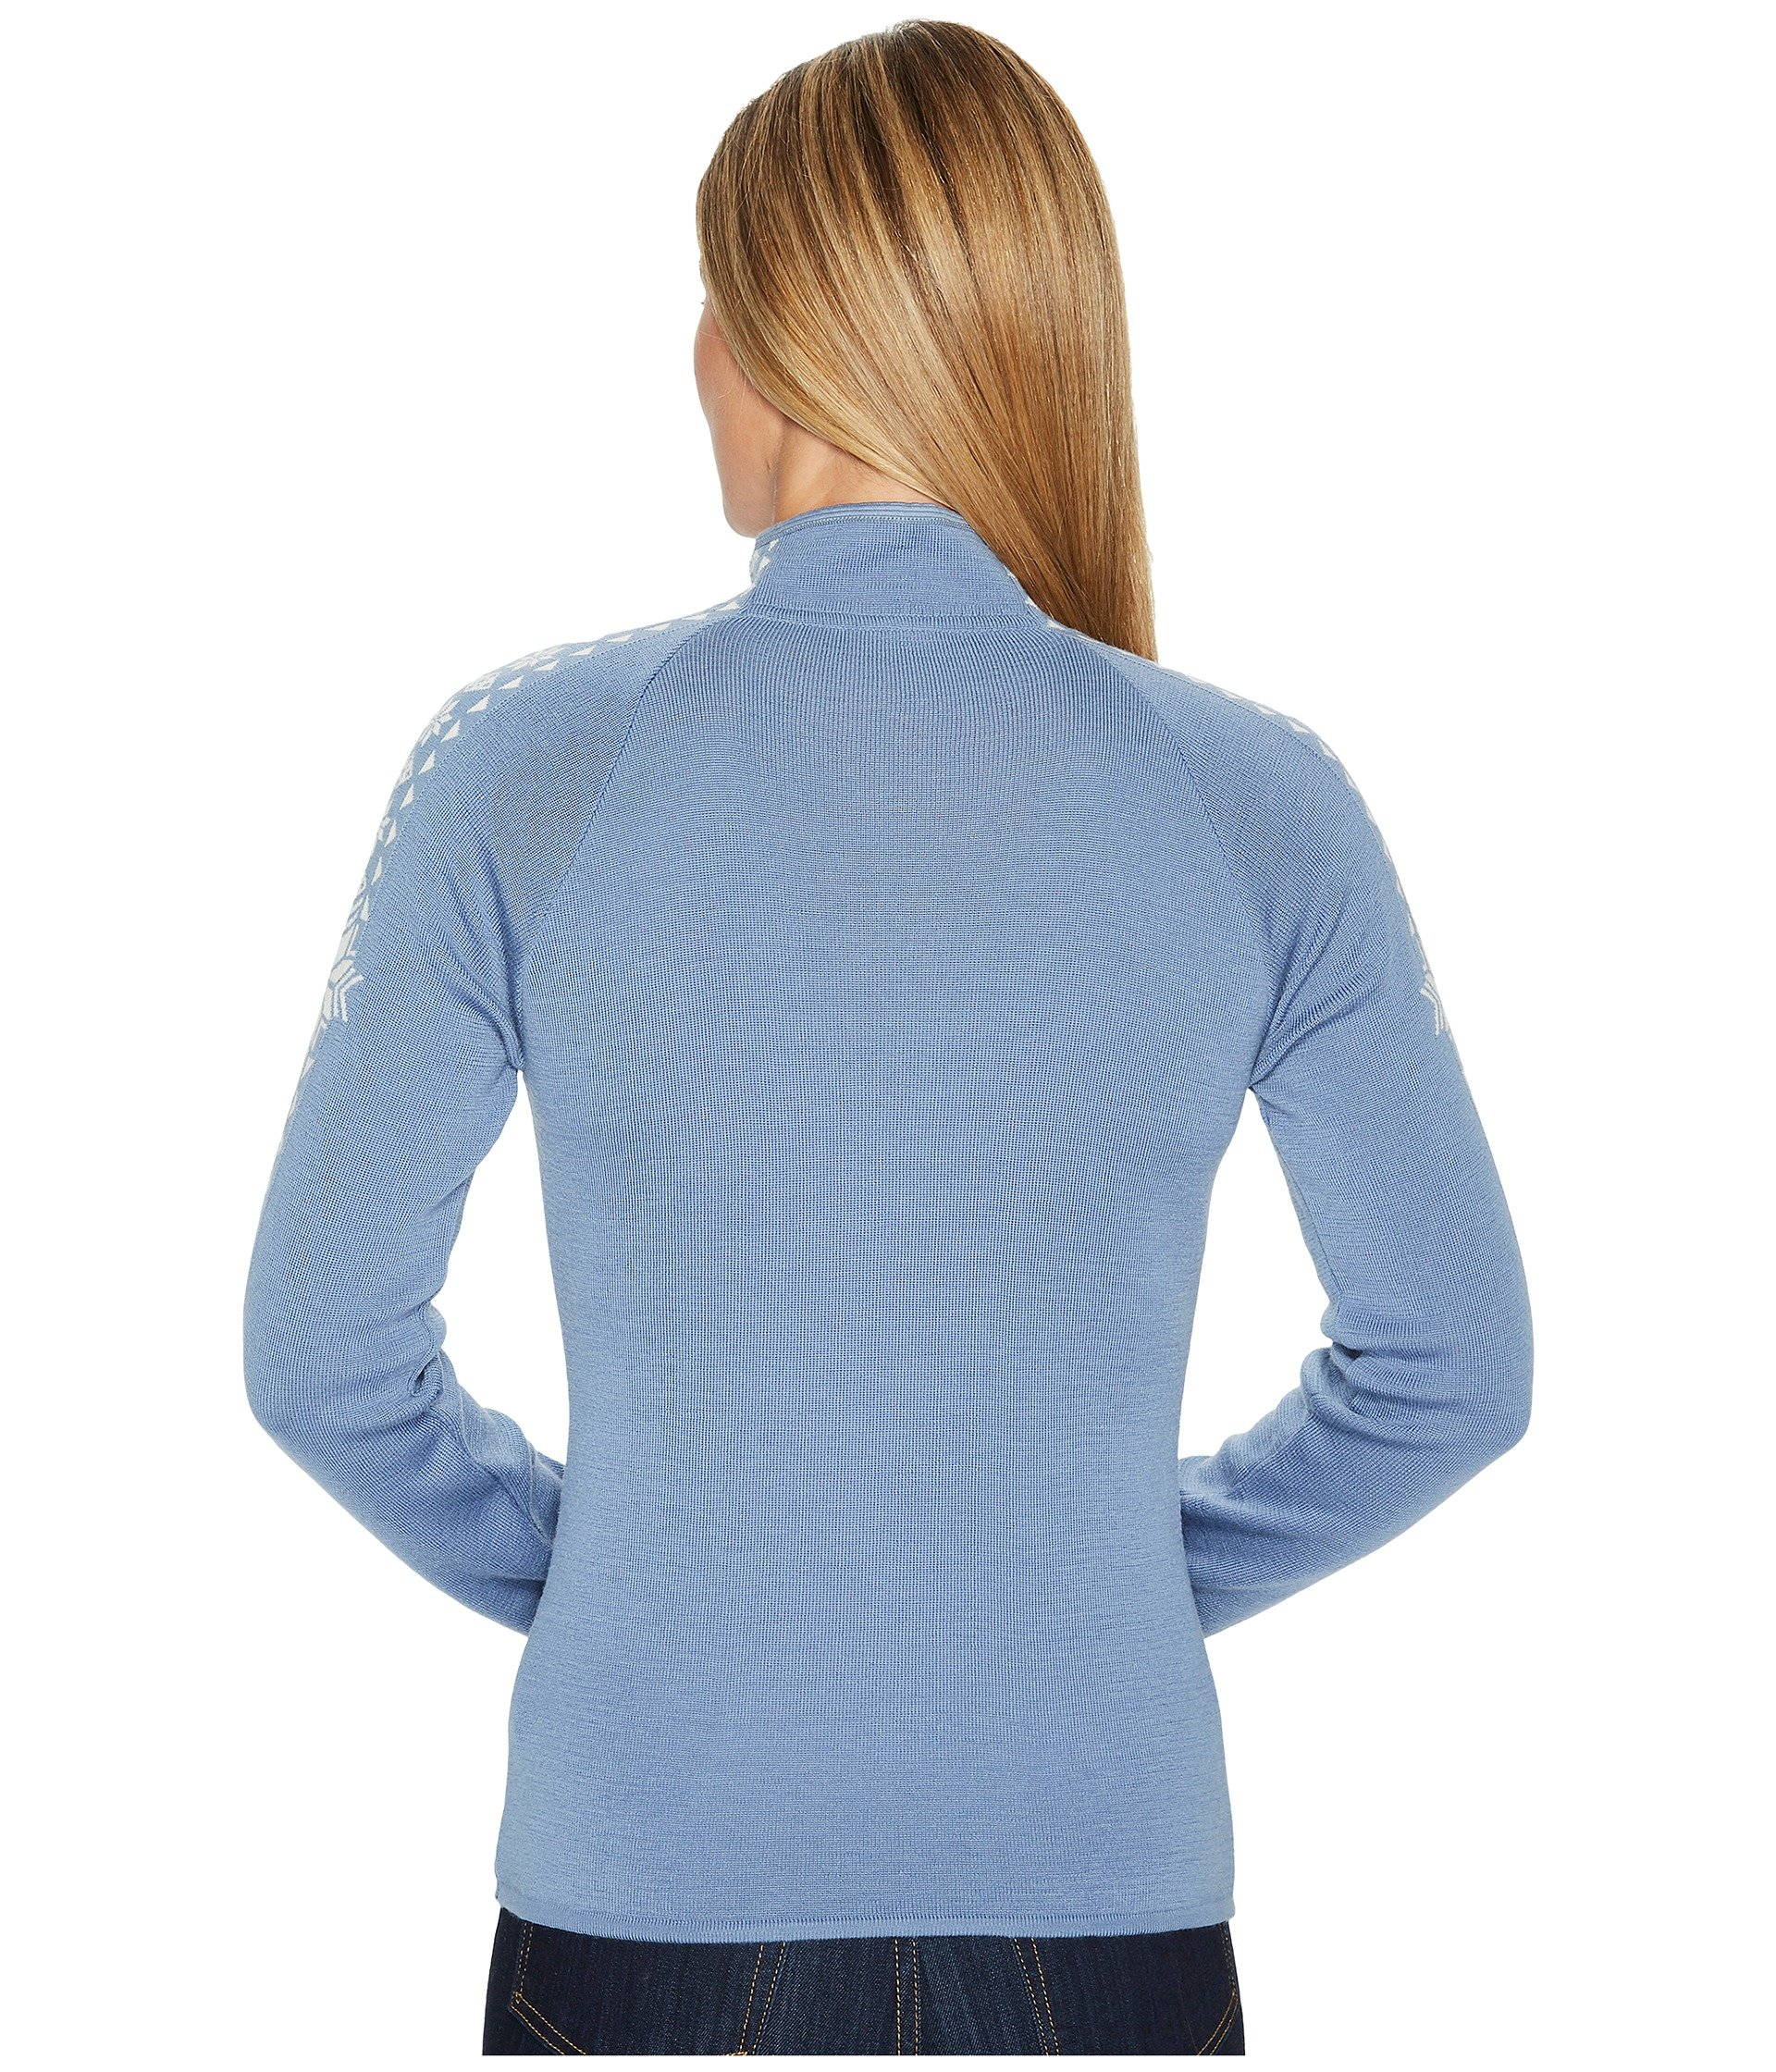 Dale of Norway Women's Geilo Feminine D-Blue Shadow/Off-White Small by Dale of Norway (Image #4)